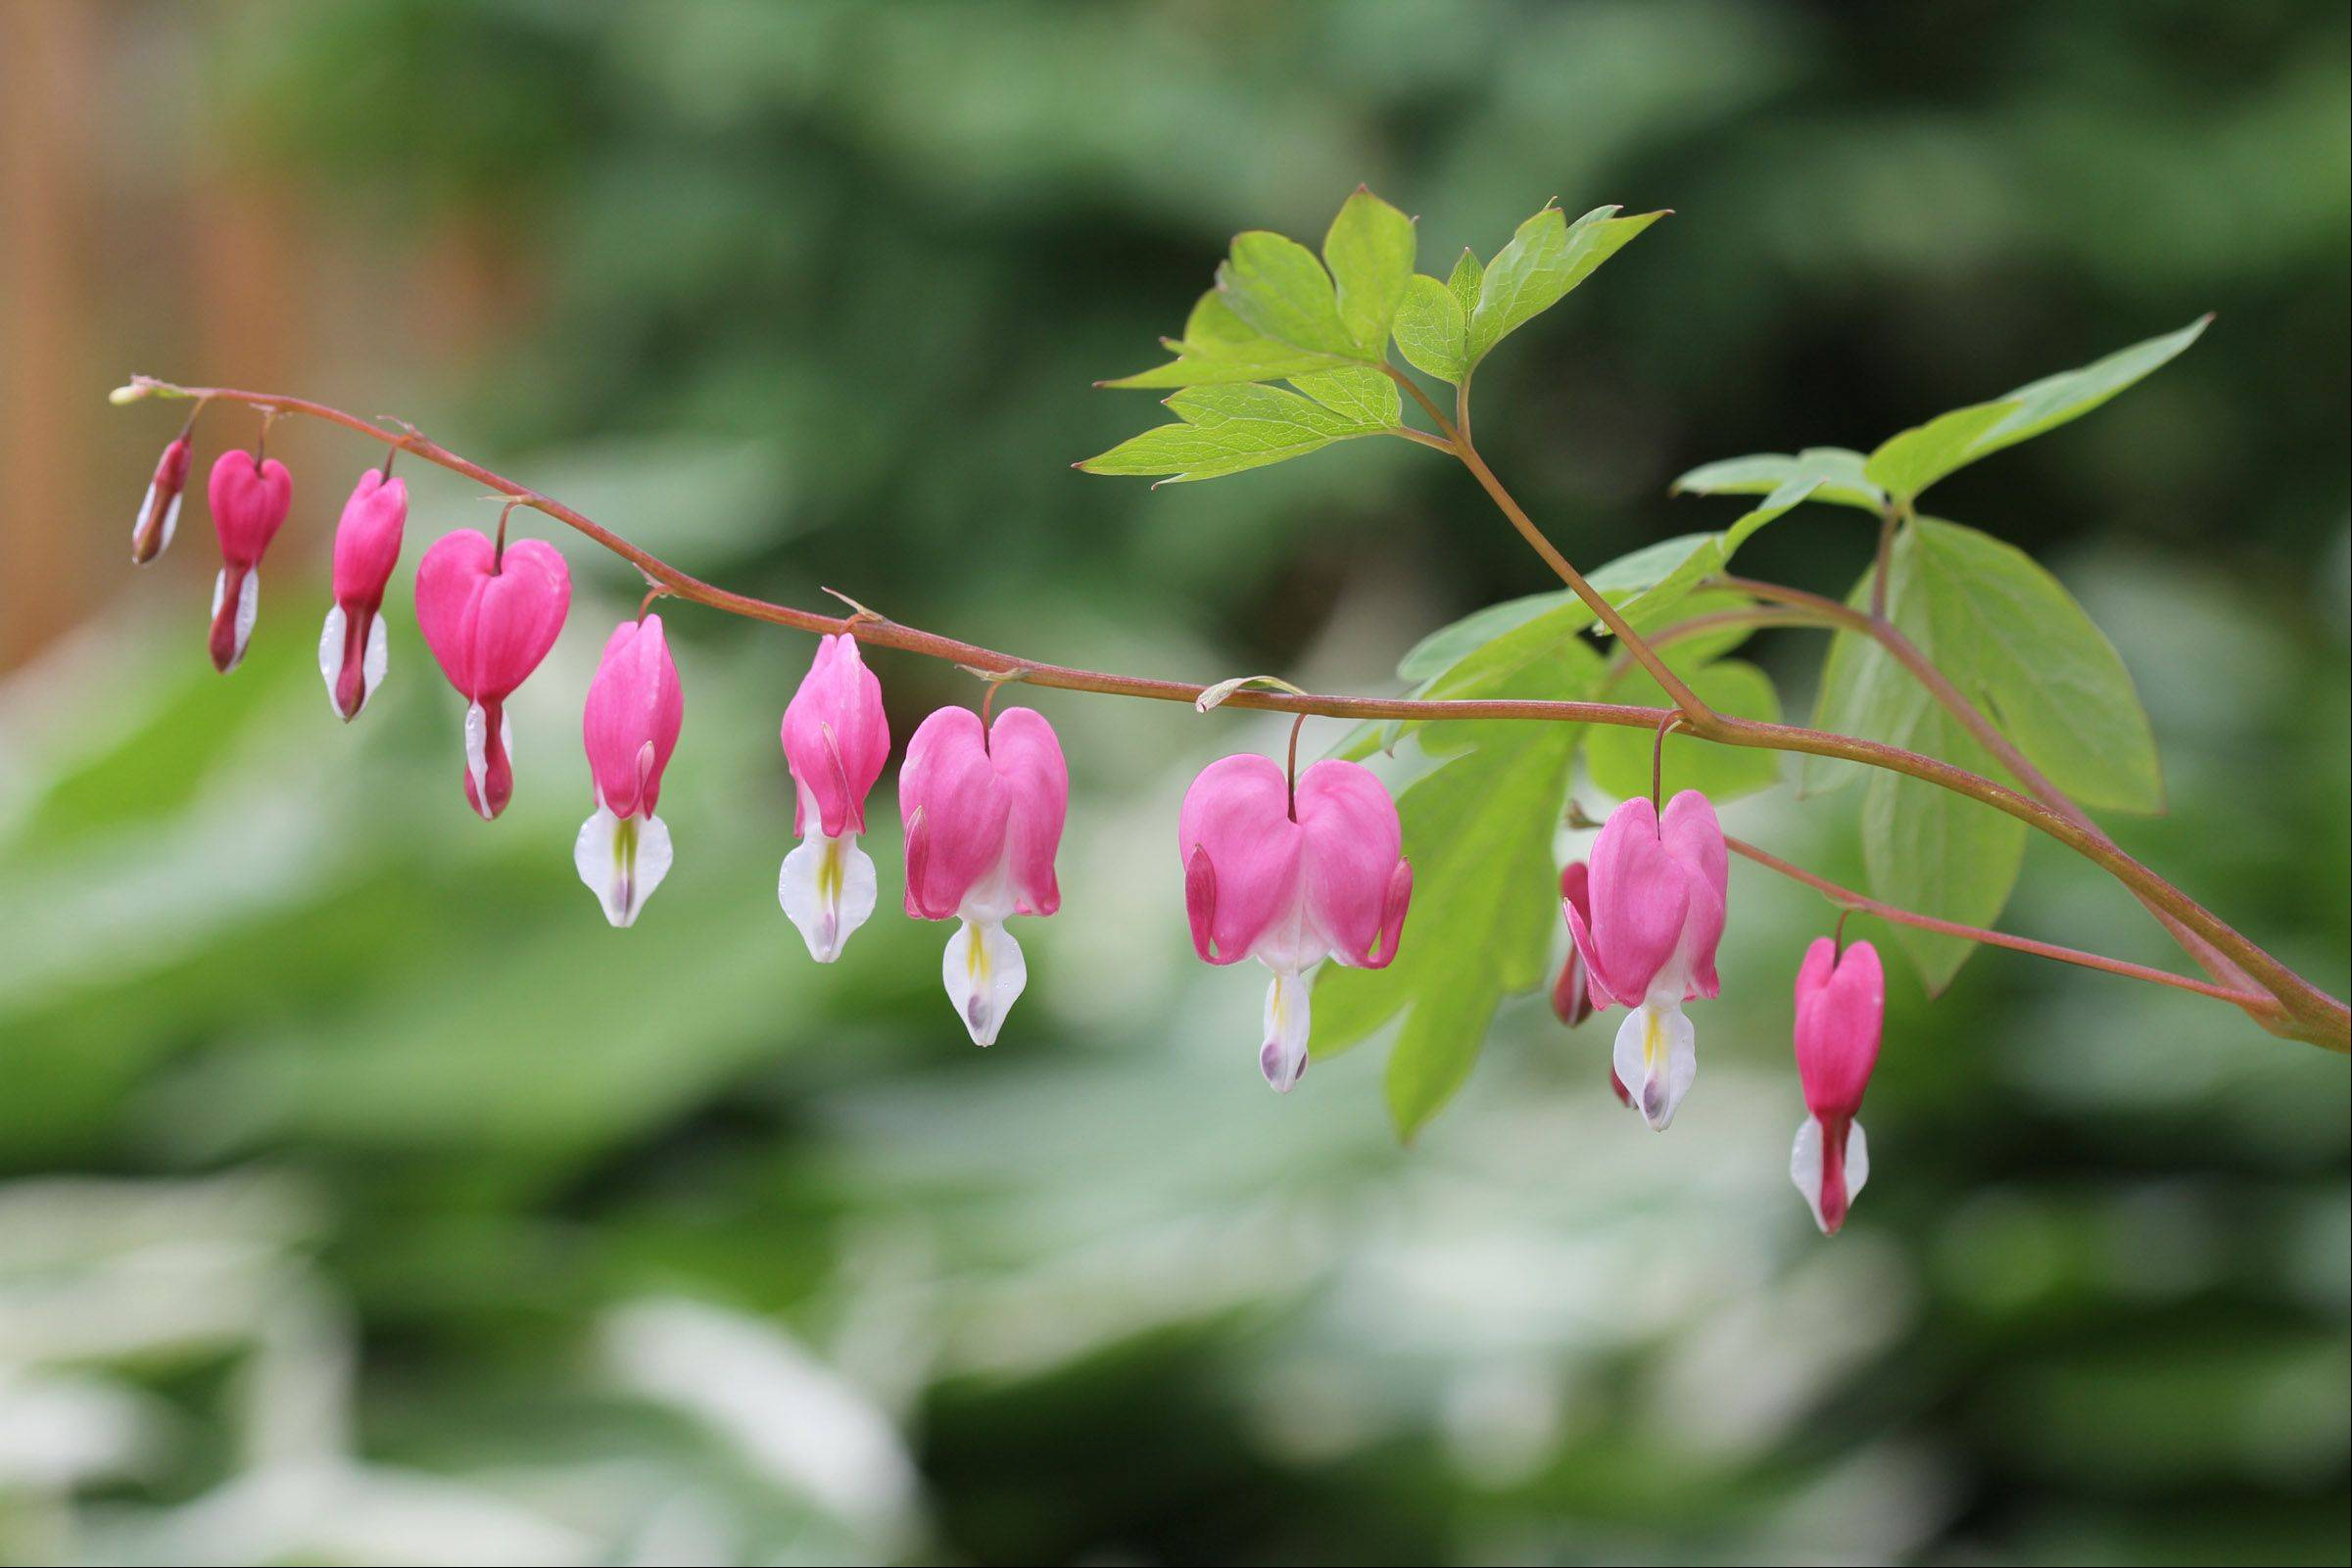 I really love the spring time when the early spring plants are blooming in our yard! These are the blooms from a Bleeding Heart plant.